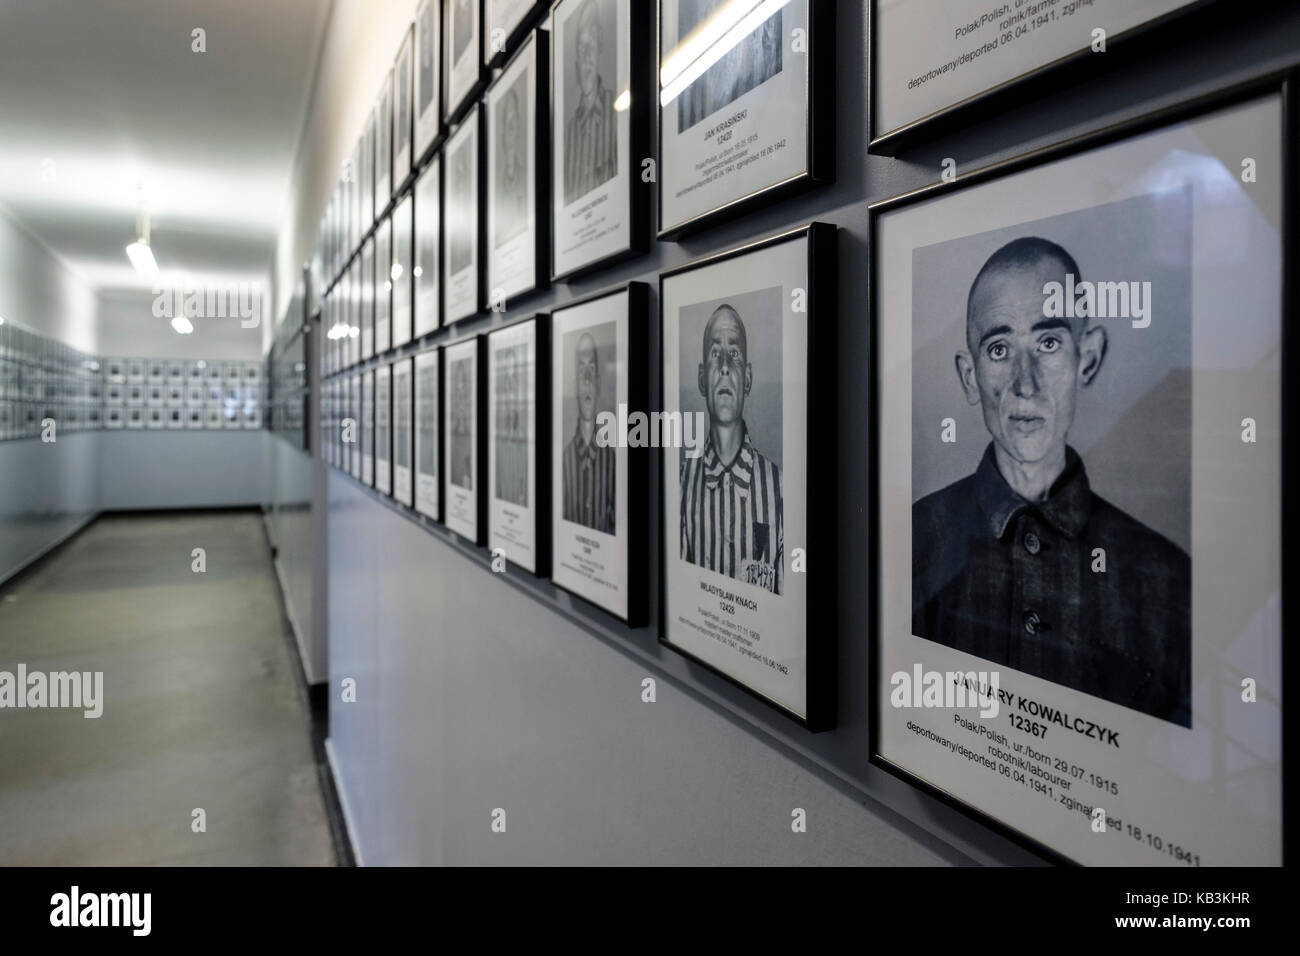 Portraits of prisoners at the Auschwitz WWII Nazi concentration camp museum, Poland - Stock Image